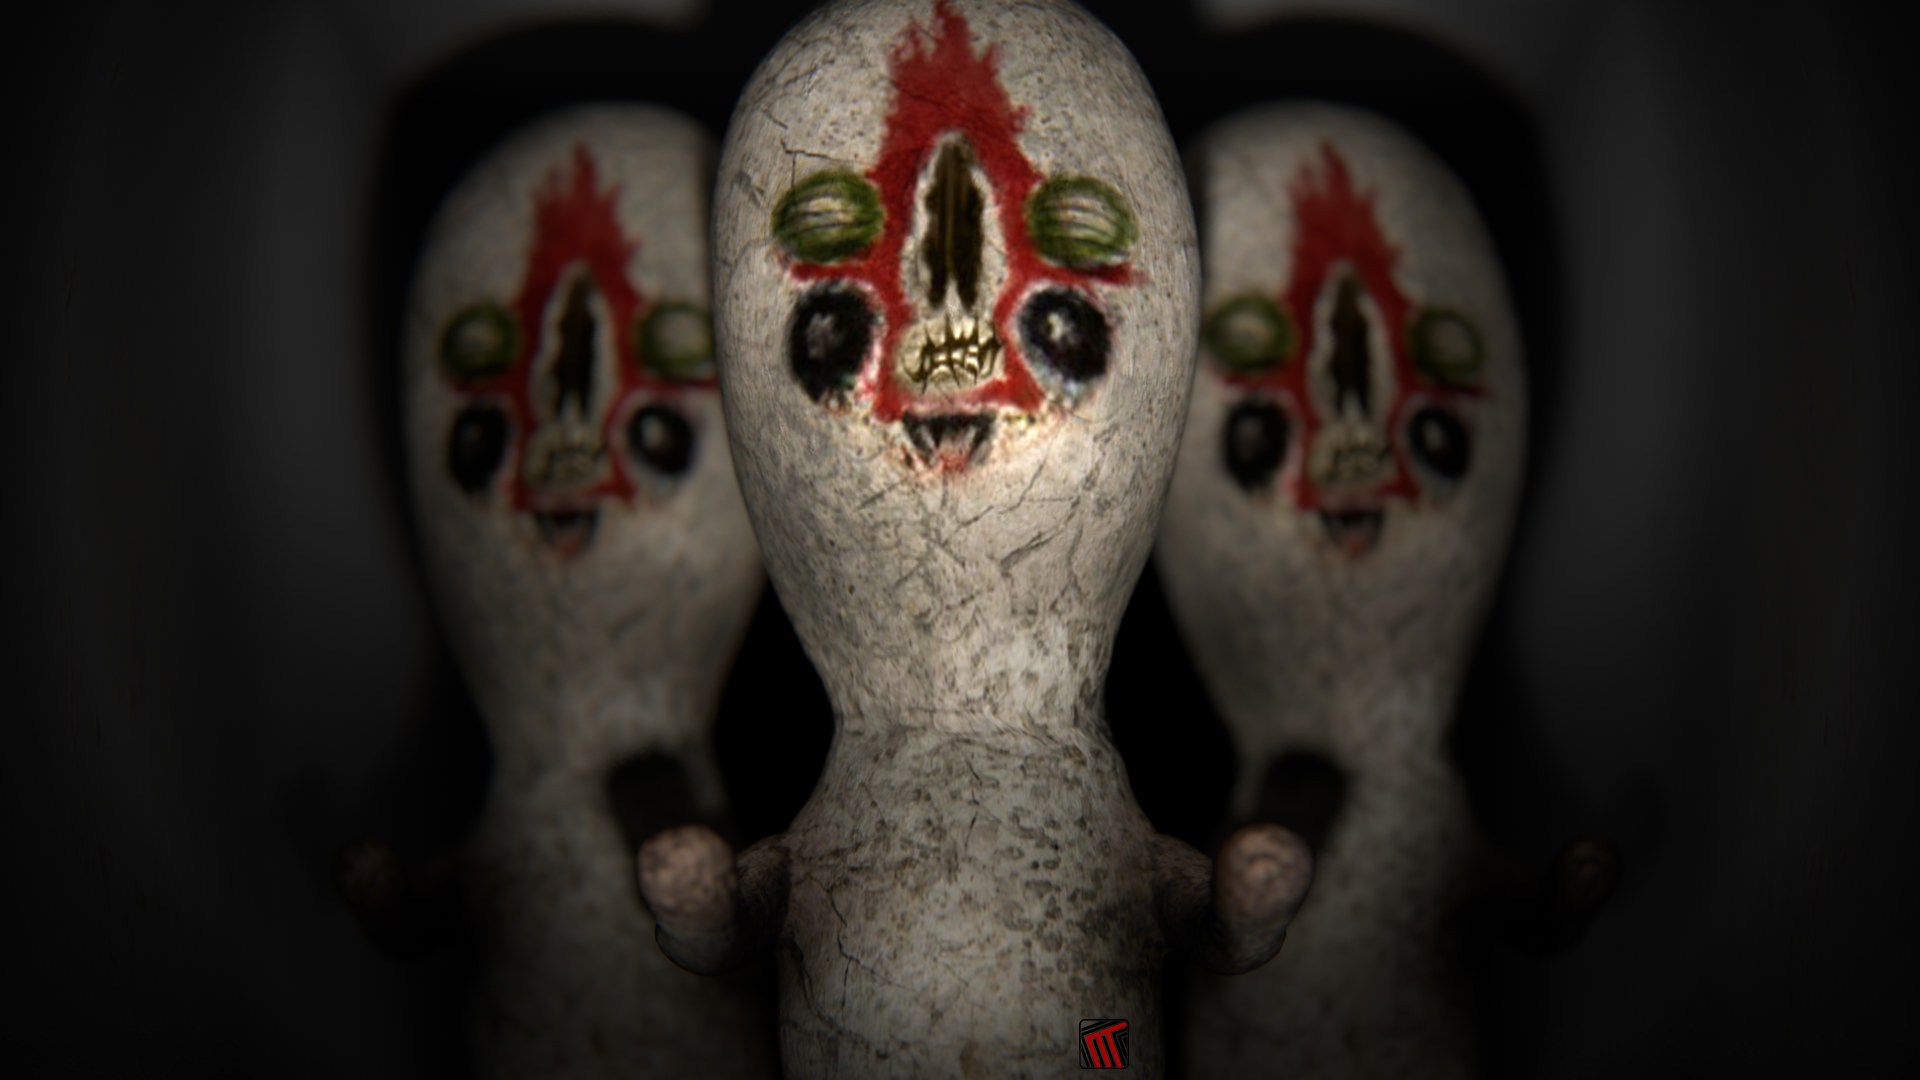 SCP - Containment Breach picture or screenshot